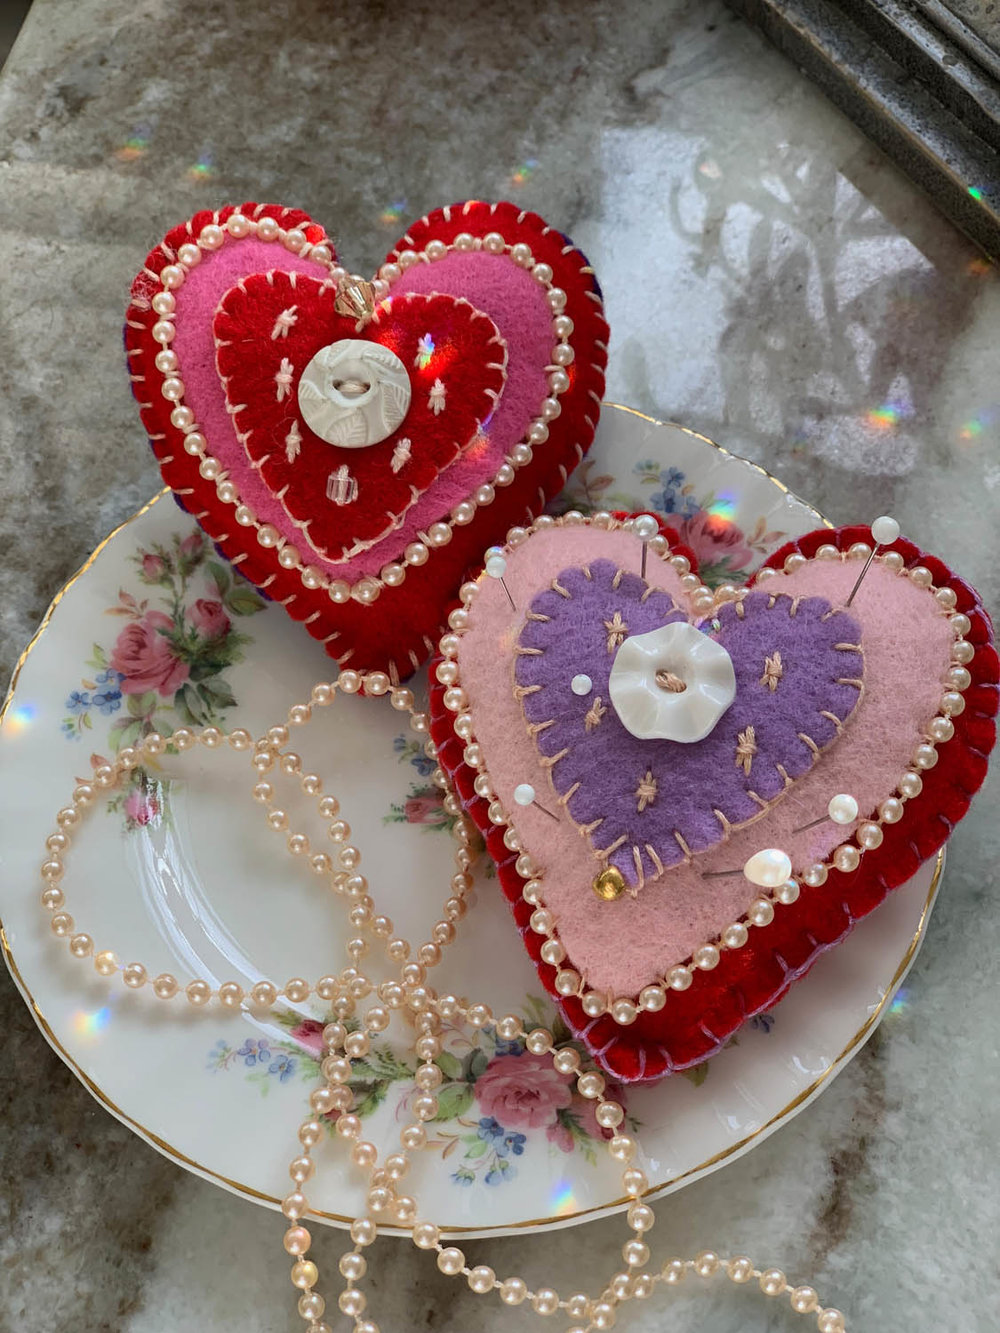 Valentime ornament or pincushion with bead trim atop a floral china plate